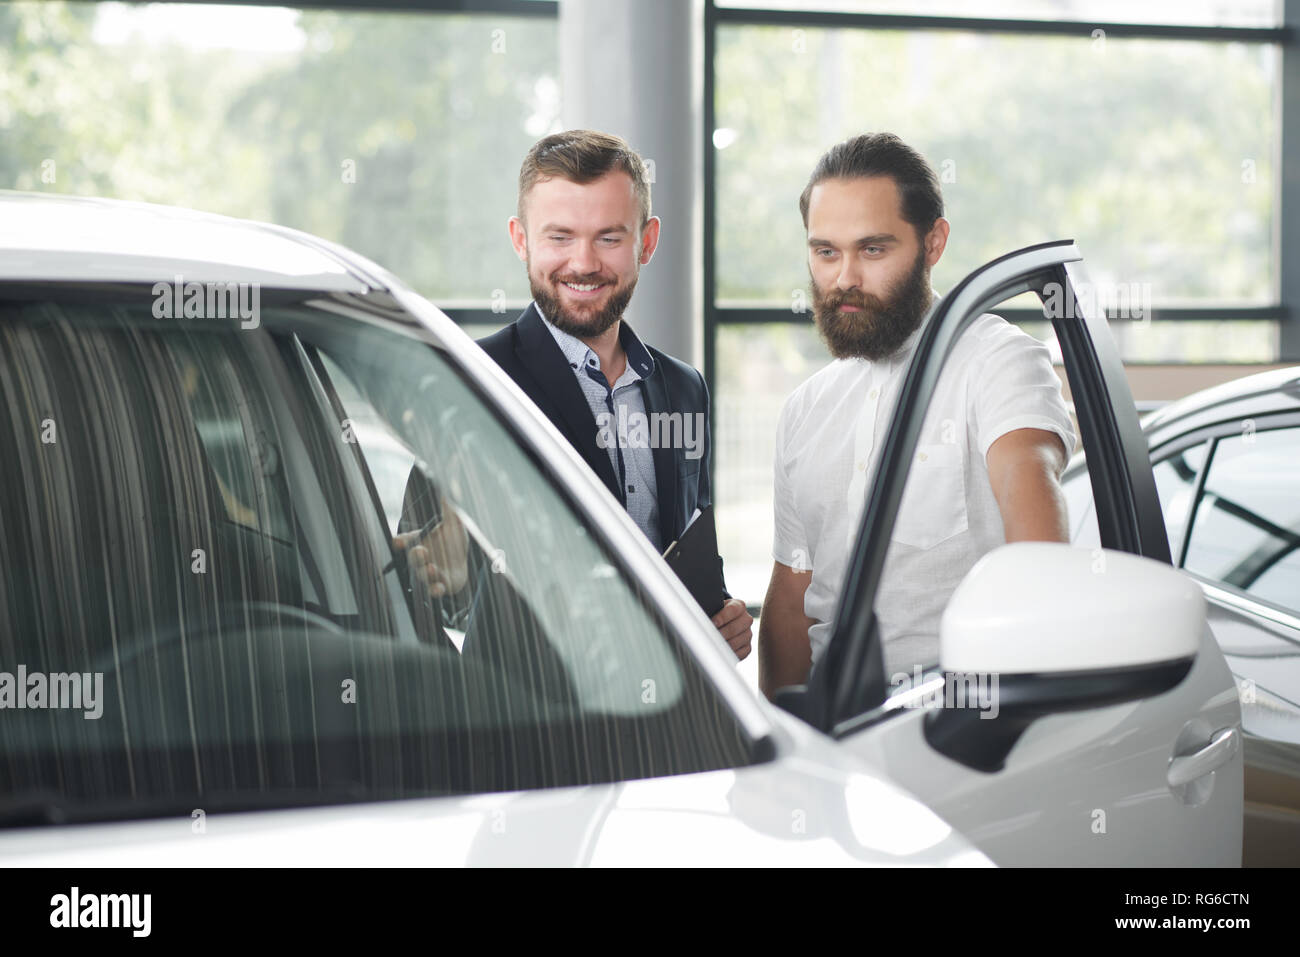 Car dealer showing car to customer. Brutal bearded man in white shirt looking at car, observing. Men standing near white automobile. Client looking for vehicle in car dealership. - Stock Image